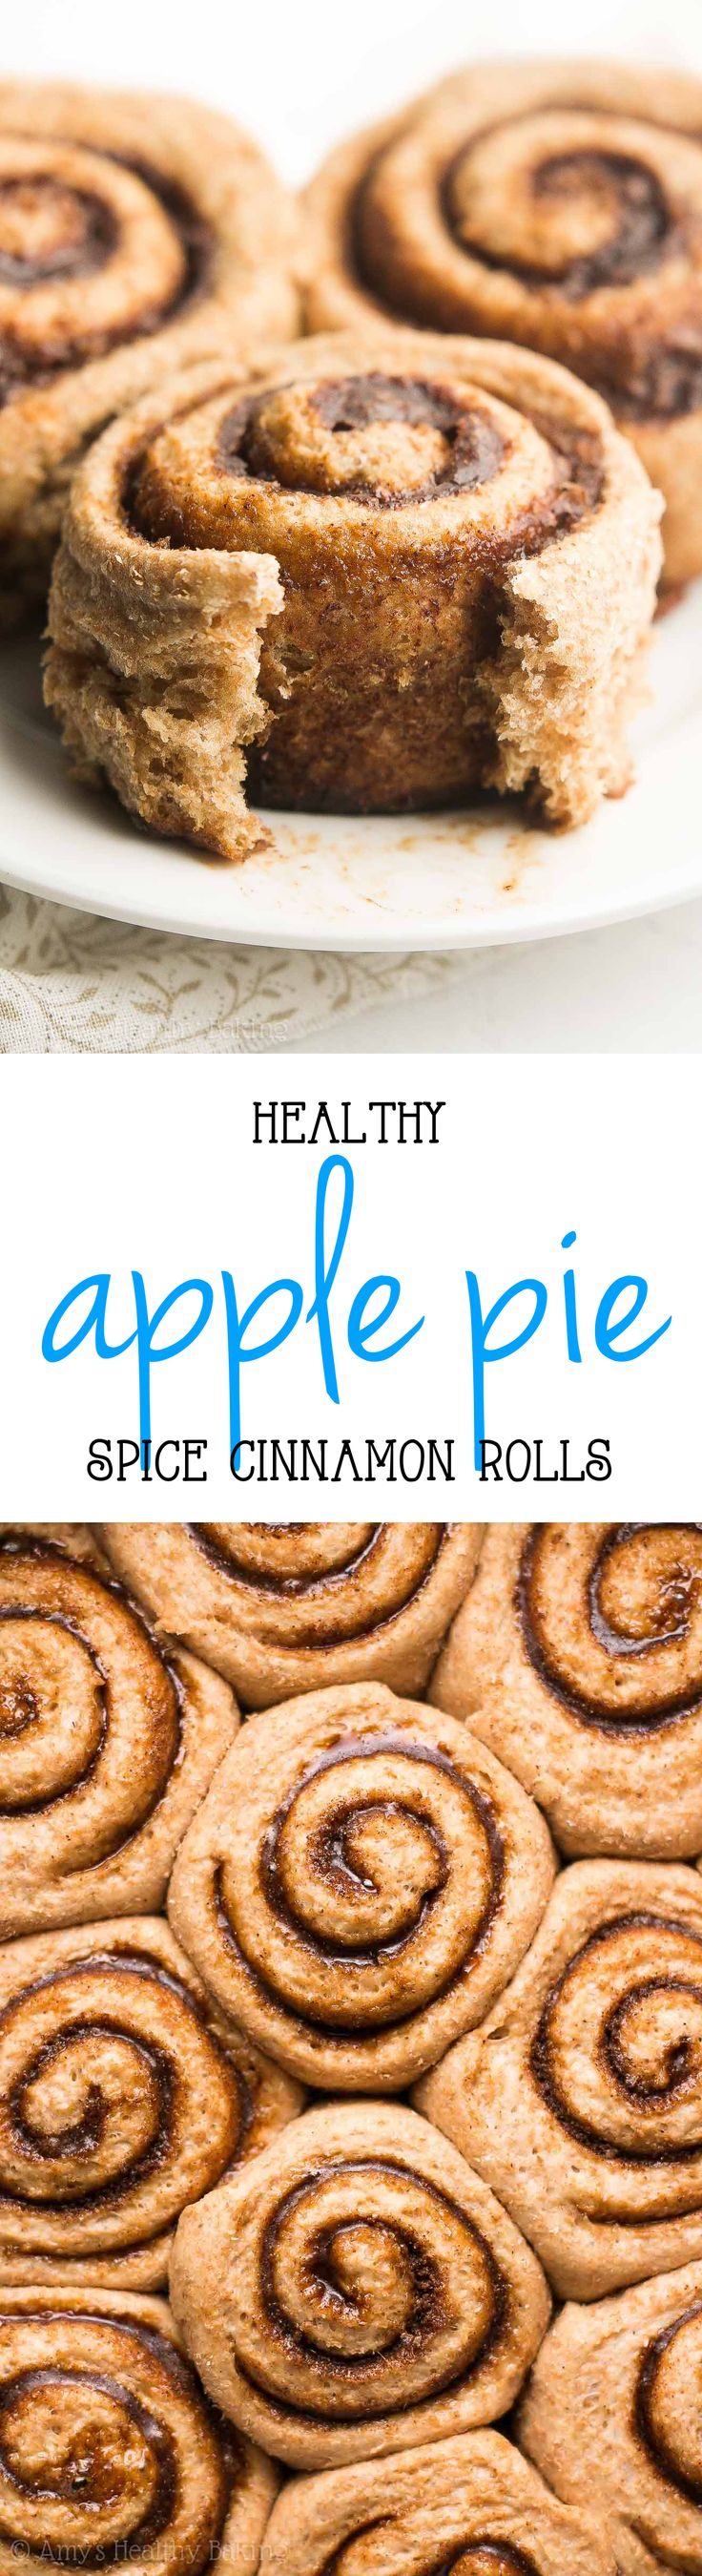 Healthy Apple Pie Spice Cinnamon Rolls -- only 112 calories + the BEST I've ever tasted! You'll never use another cinnamon roll recipe again! {The secret's in the spice blend!!} | homemade cinnamon rolls | cinnamon rolls recipe | best healthy cinnamon rolls